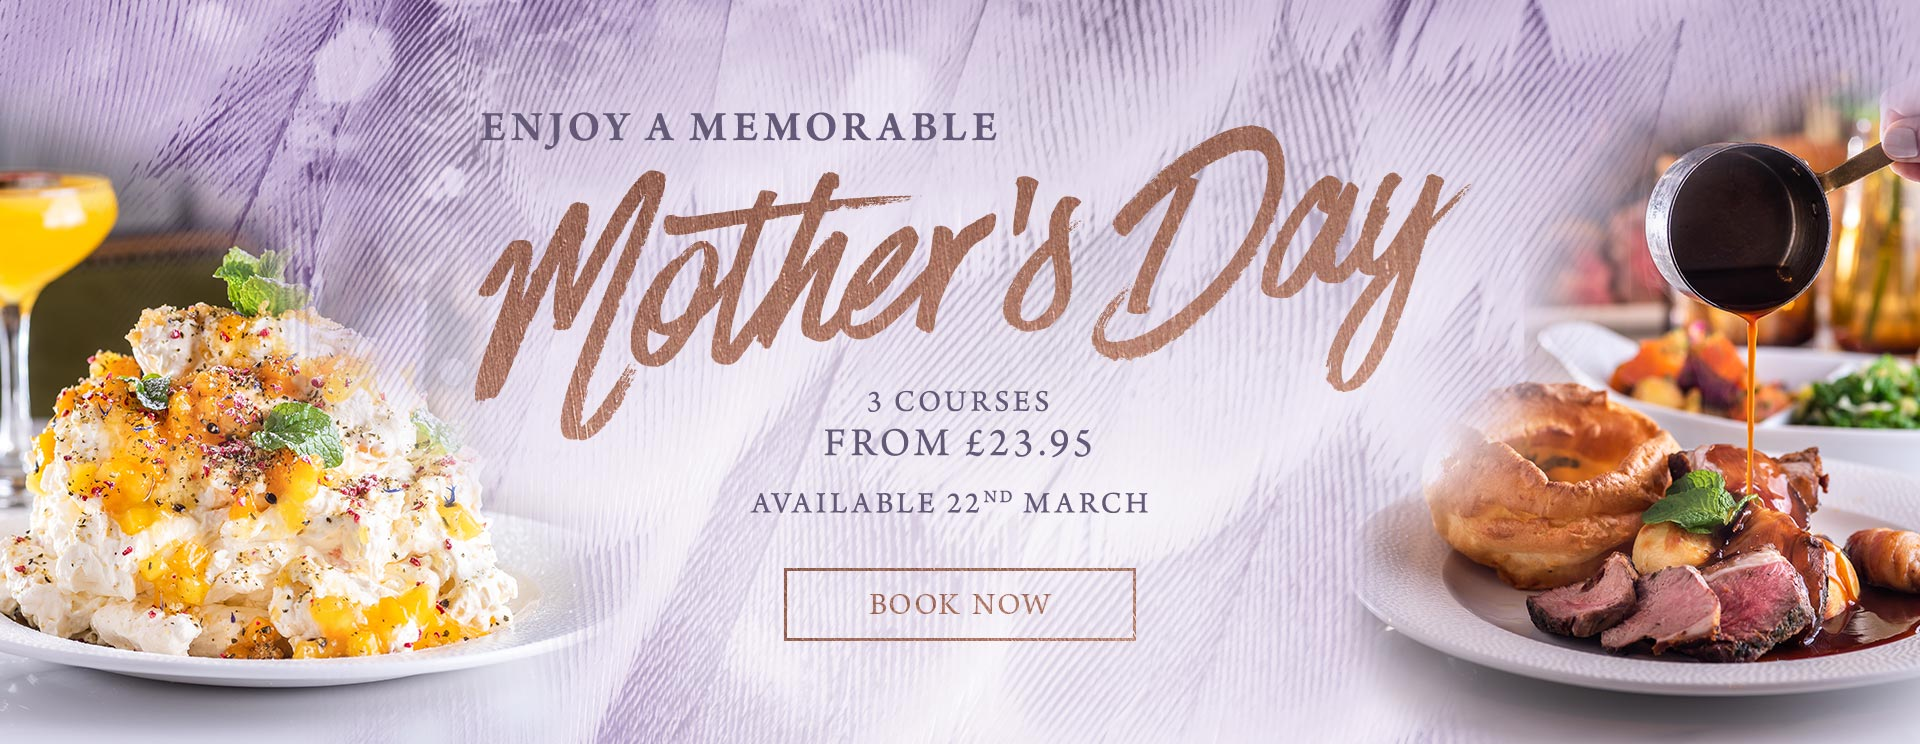 Mother's Day 2019 at The Mossbrook Inn